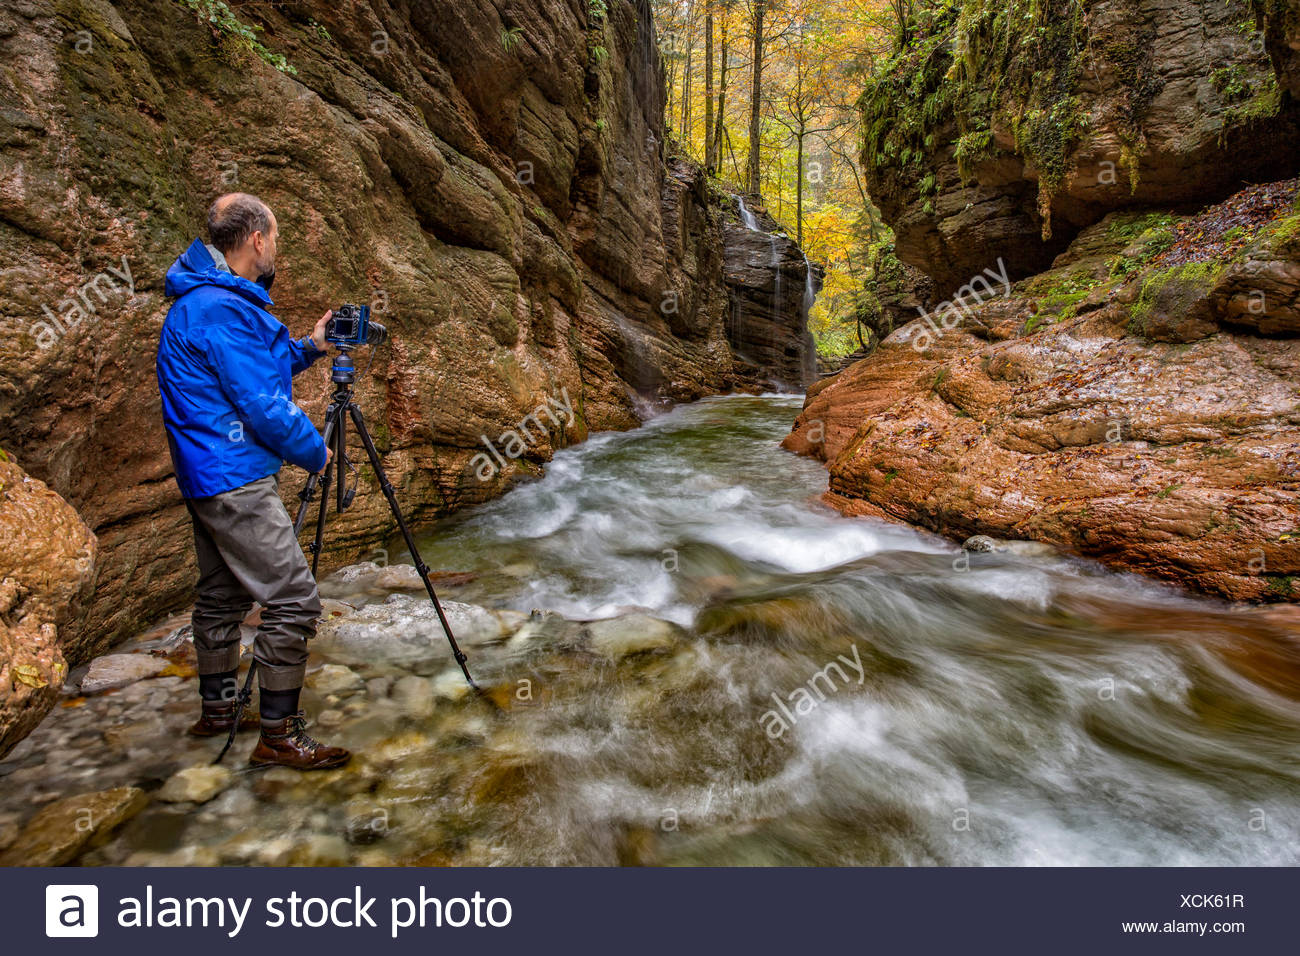 Austria, Tennegau, Photographer standing at Taugl river Stock Photo